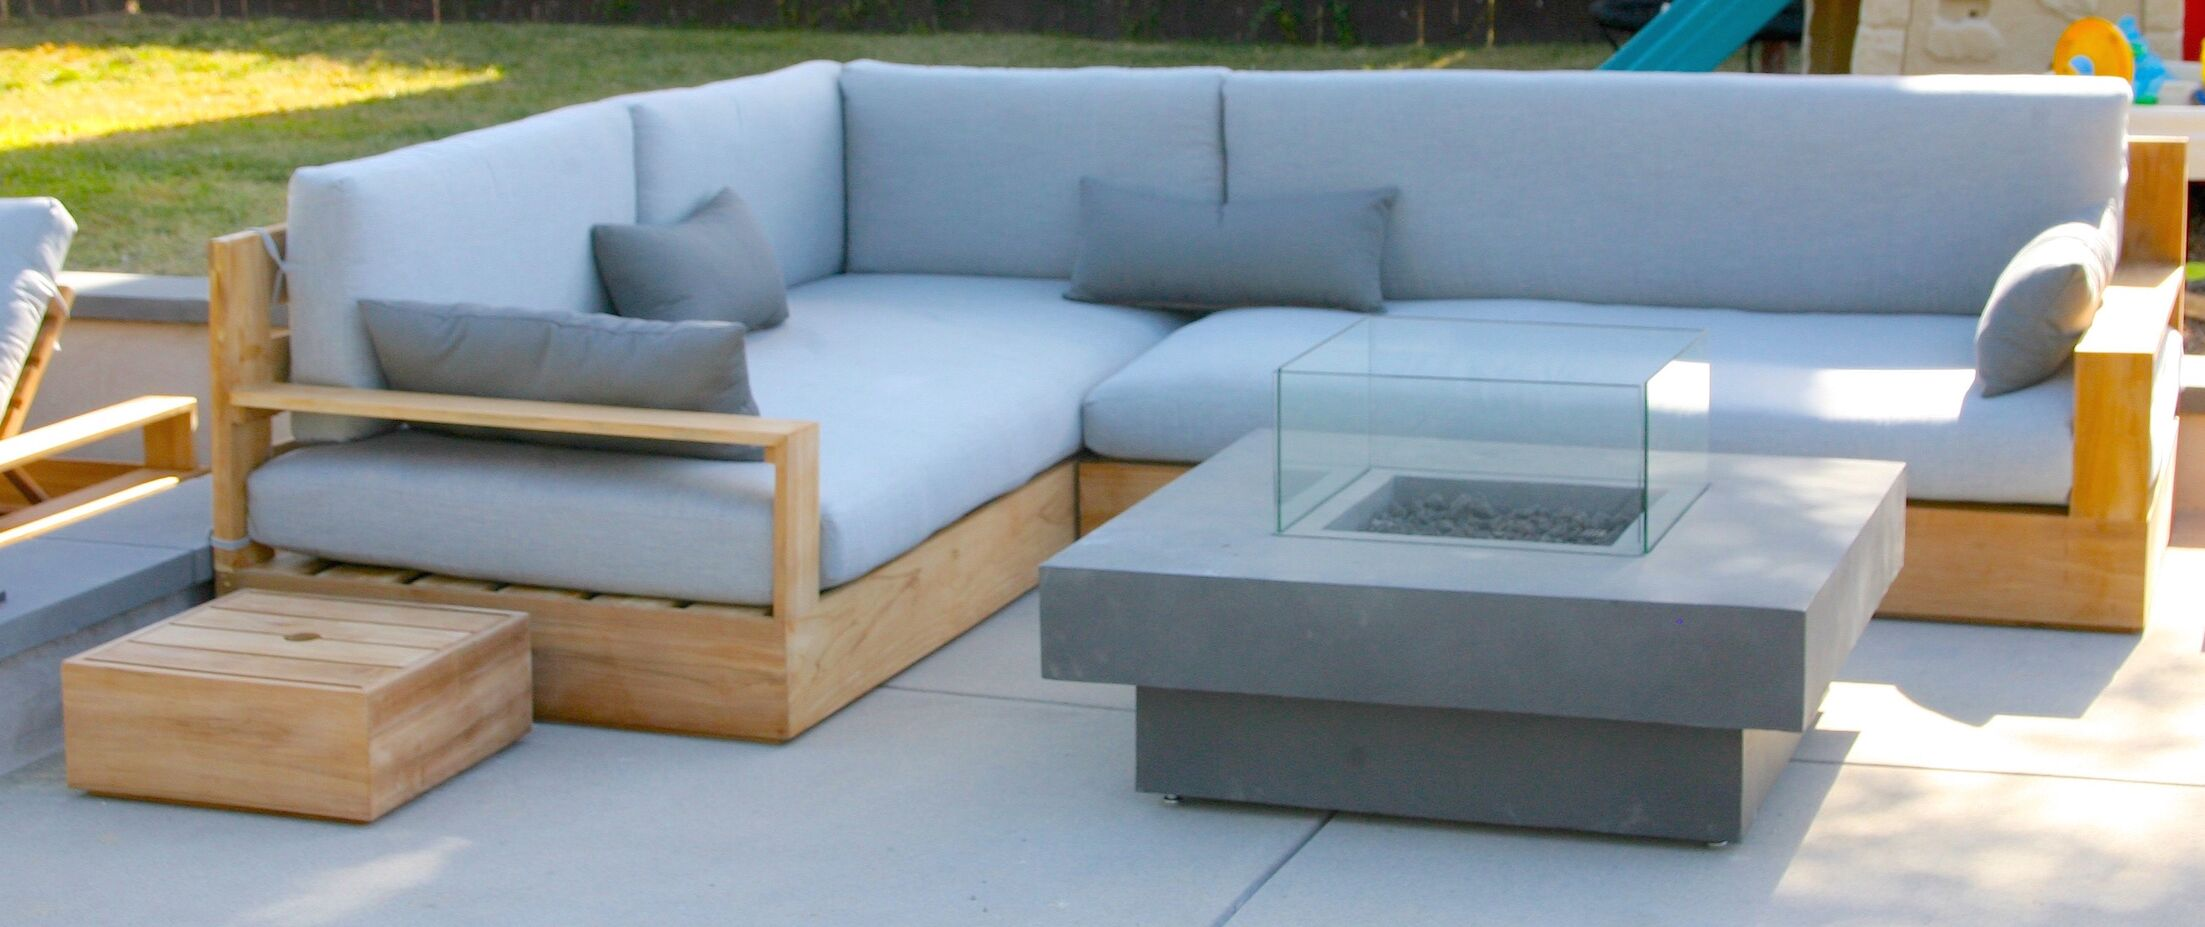 Bale 3 Piece Teak Sunbrella Sectional Set with Cushions Fabric: Brick